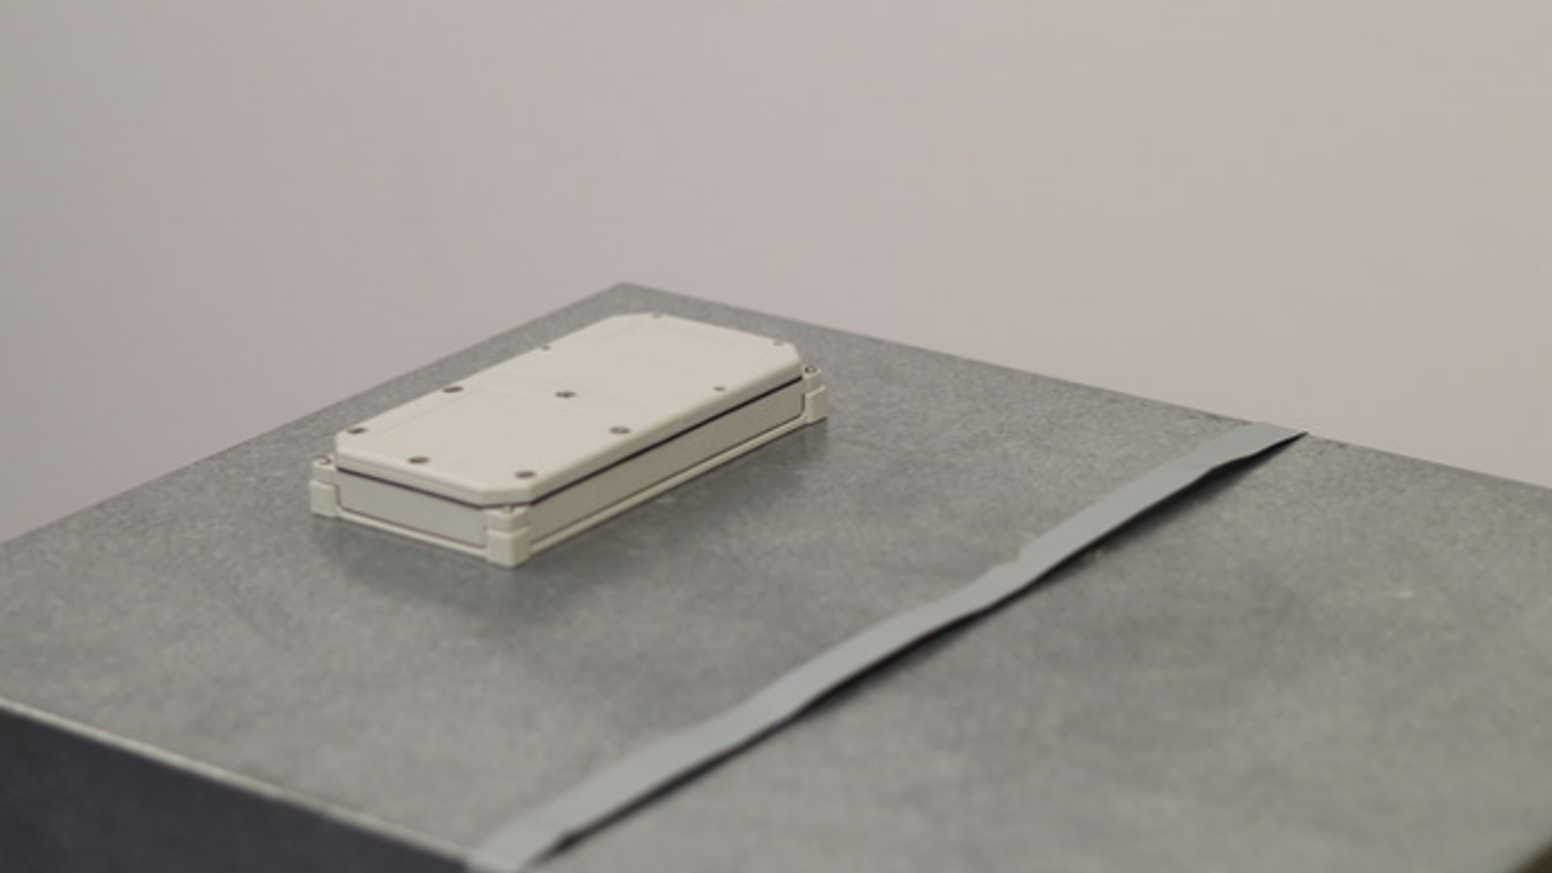 Innovative Wireless Beehive Scales By Hivemind Kickstarter Circuit Boards Find New Life As Notebooks Soul Magazine